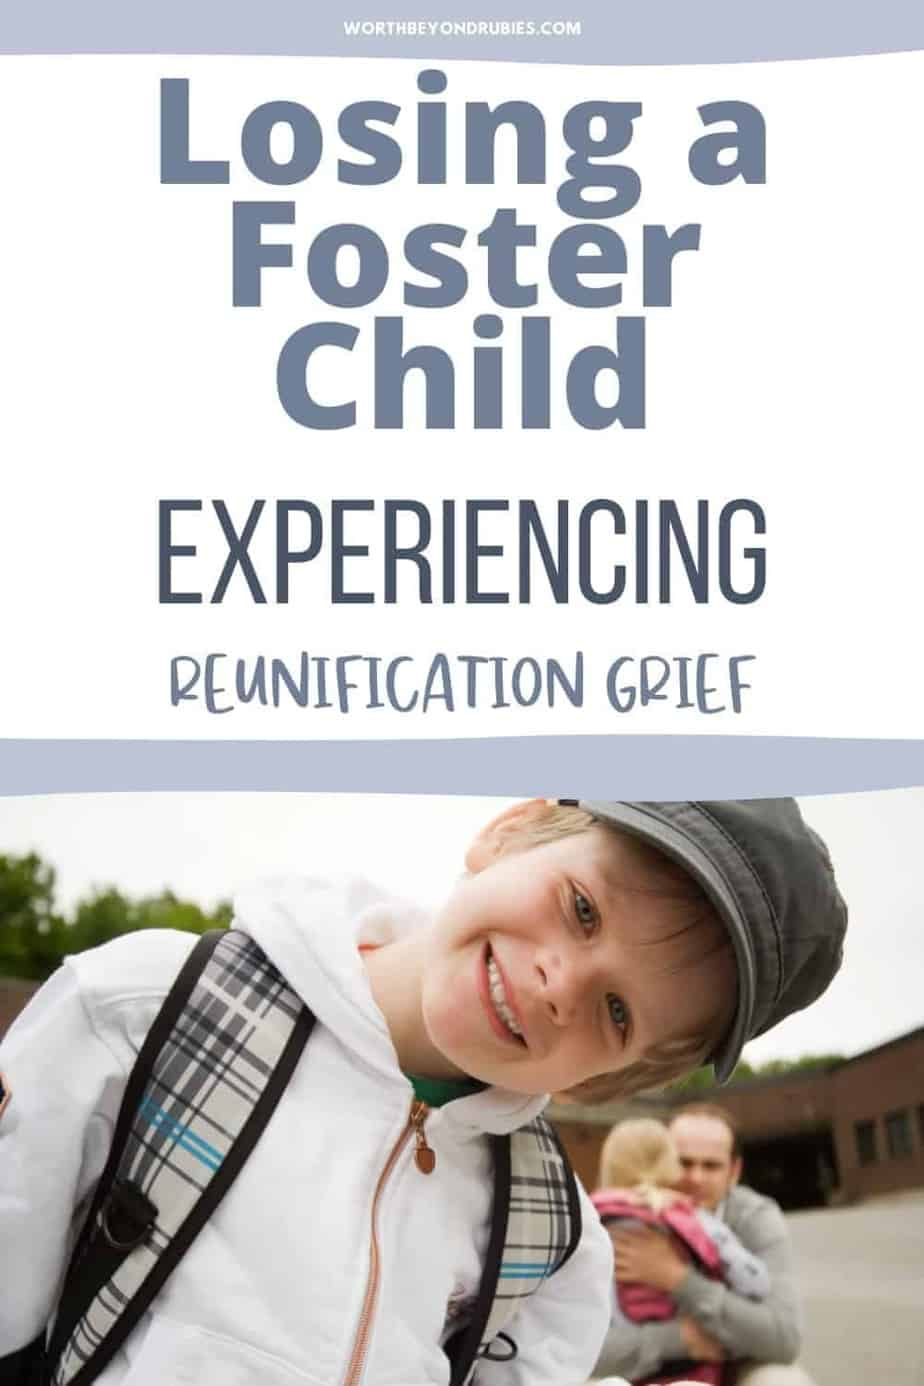 An image of a little boy with a ball cap on and a backpack with a little girl behind him hugging a man and text that says Losing a Foster Child - Experiencing Reunification Grief